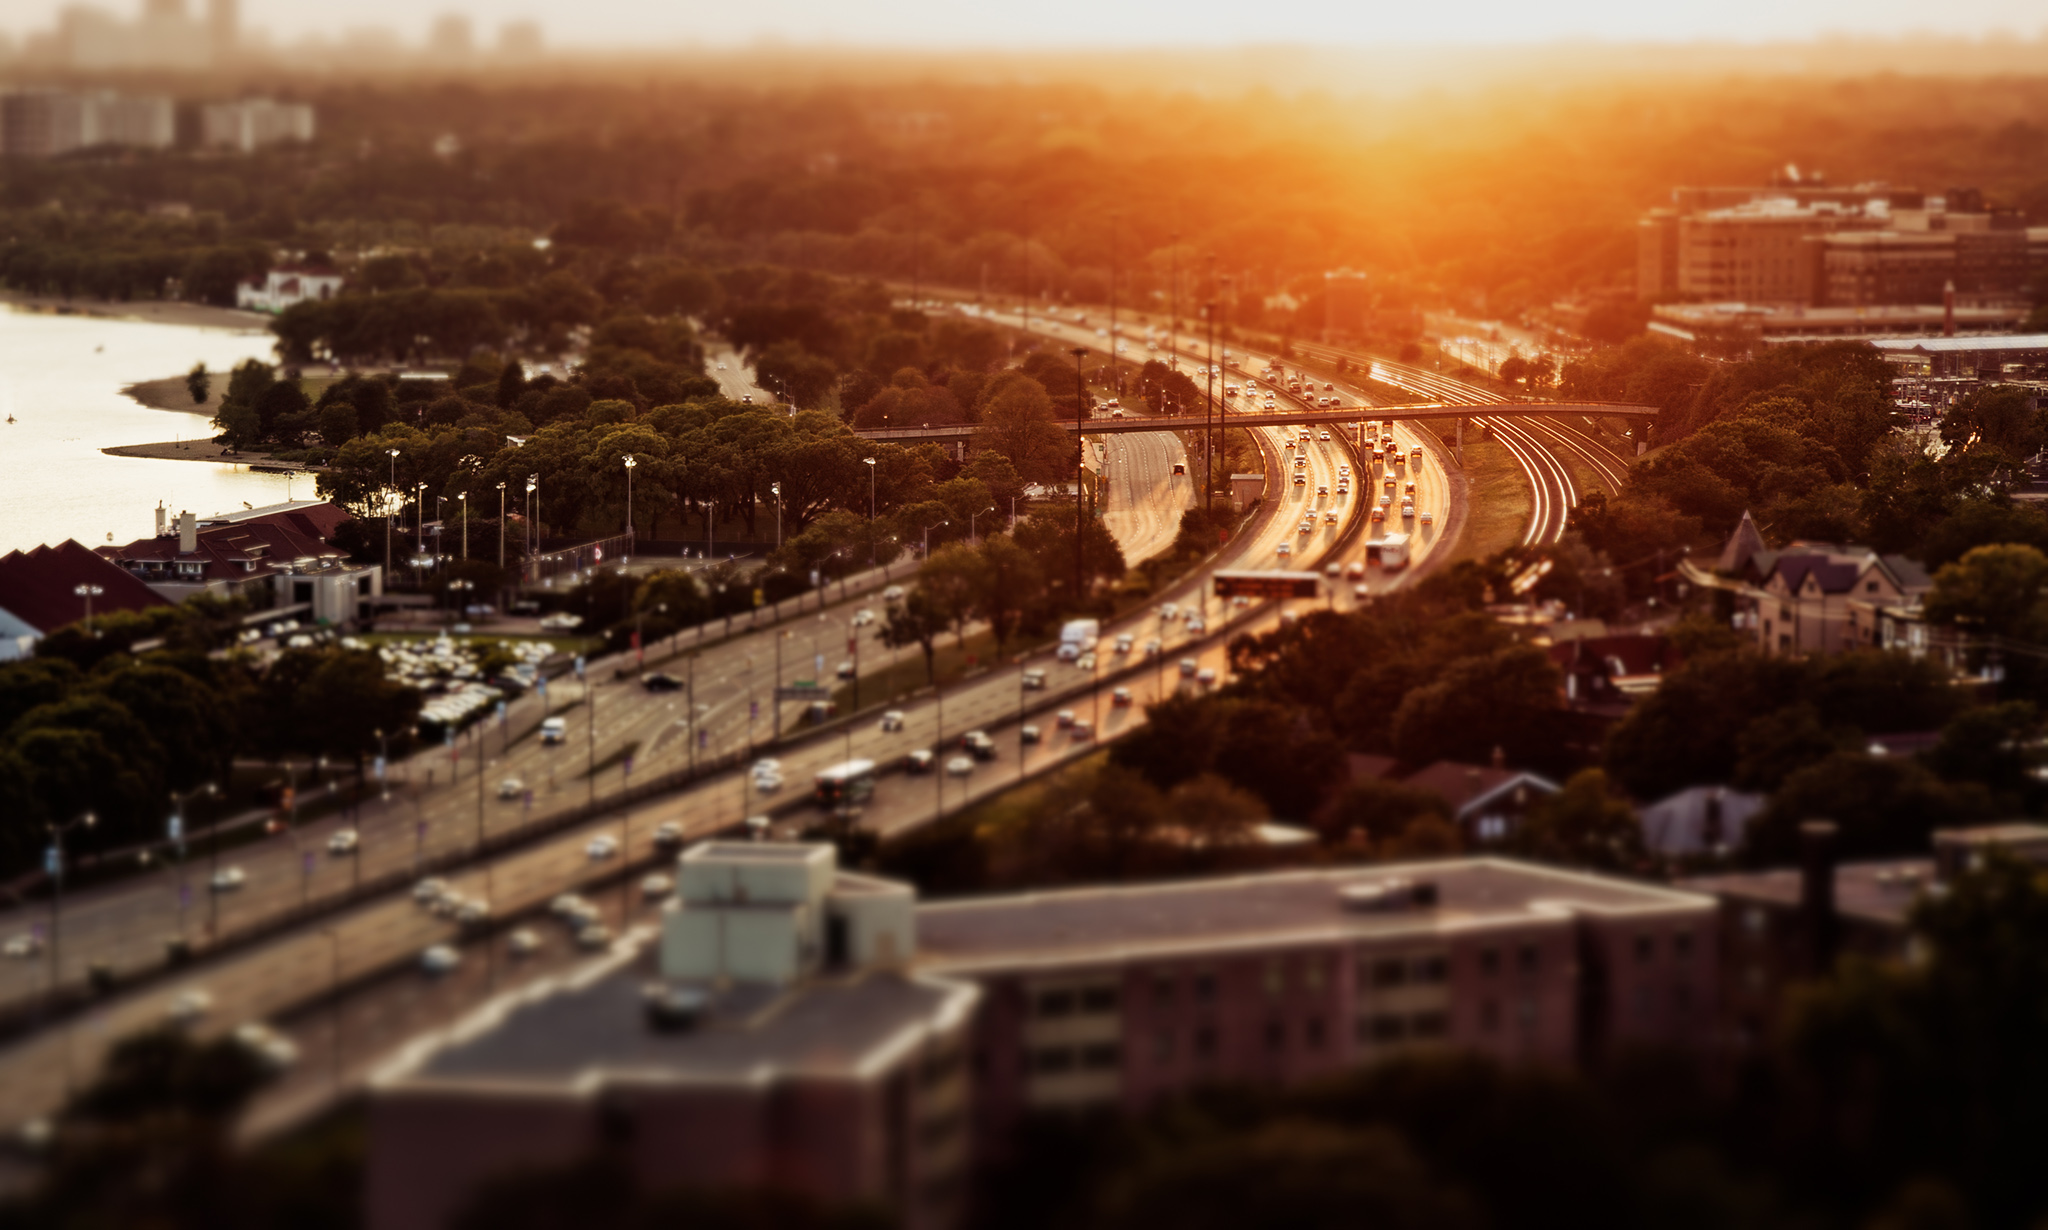 west_horizon_sunset_from-close_gold-highway_01ts.jpg